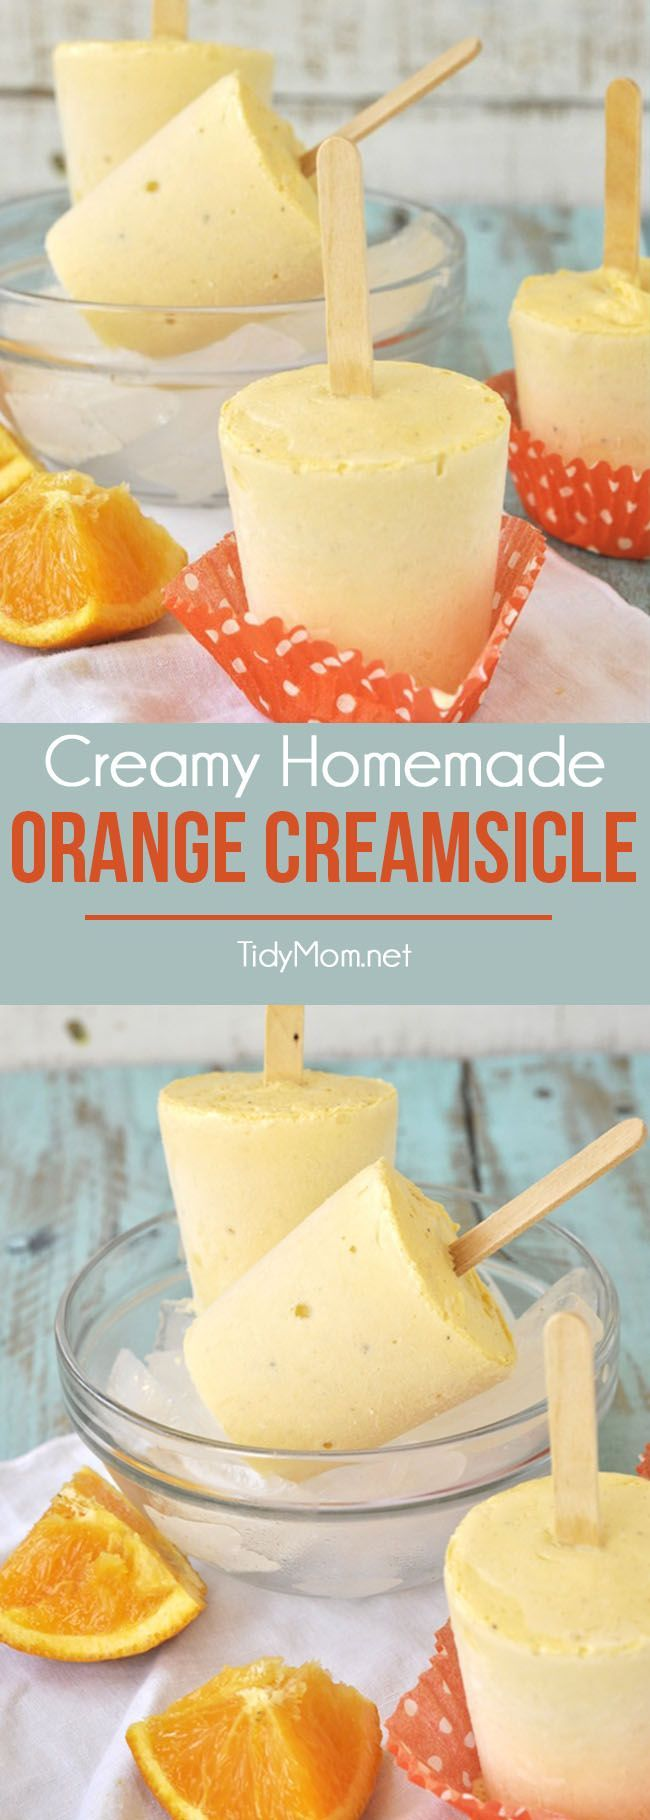 This homemade Orange Creamsicle frozen treat is fun to make and dripping with orange and vanilla, a refreshing classic summer flavor combination. recipe at TidyMom.net